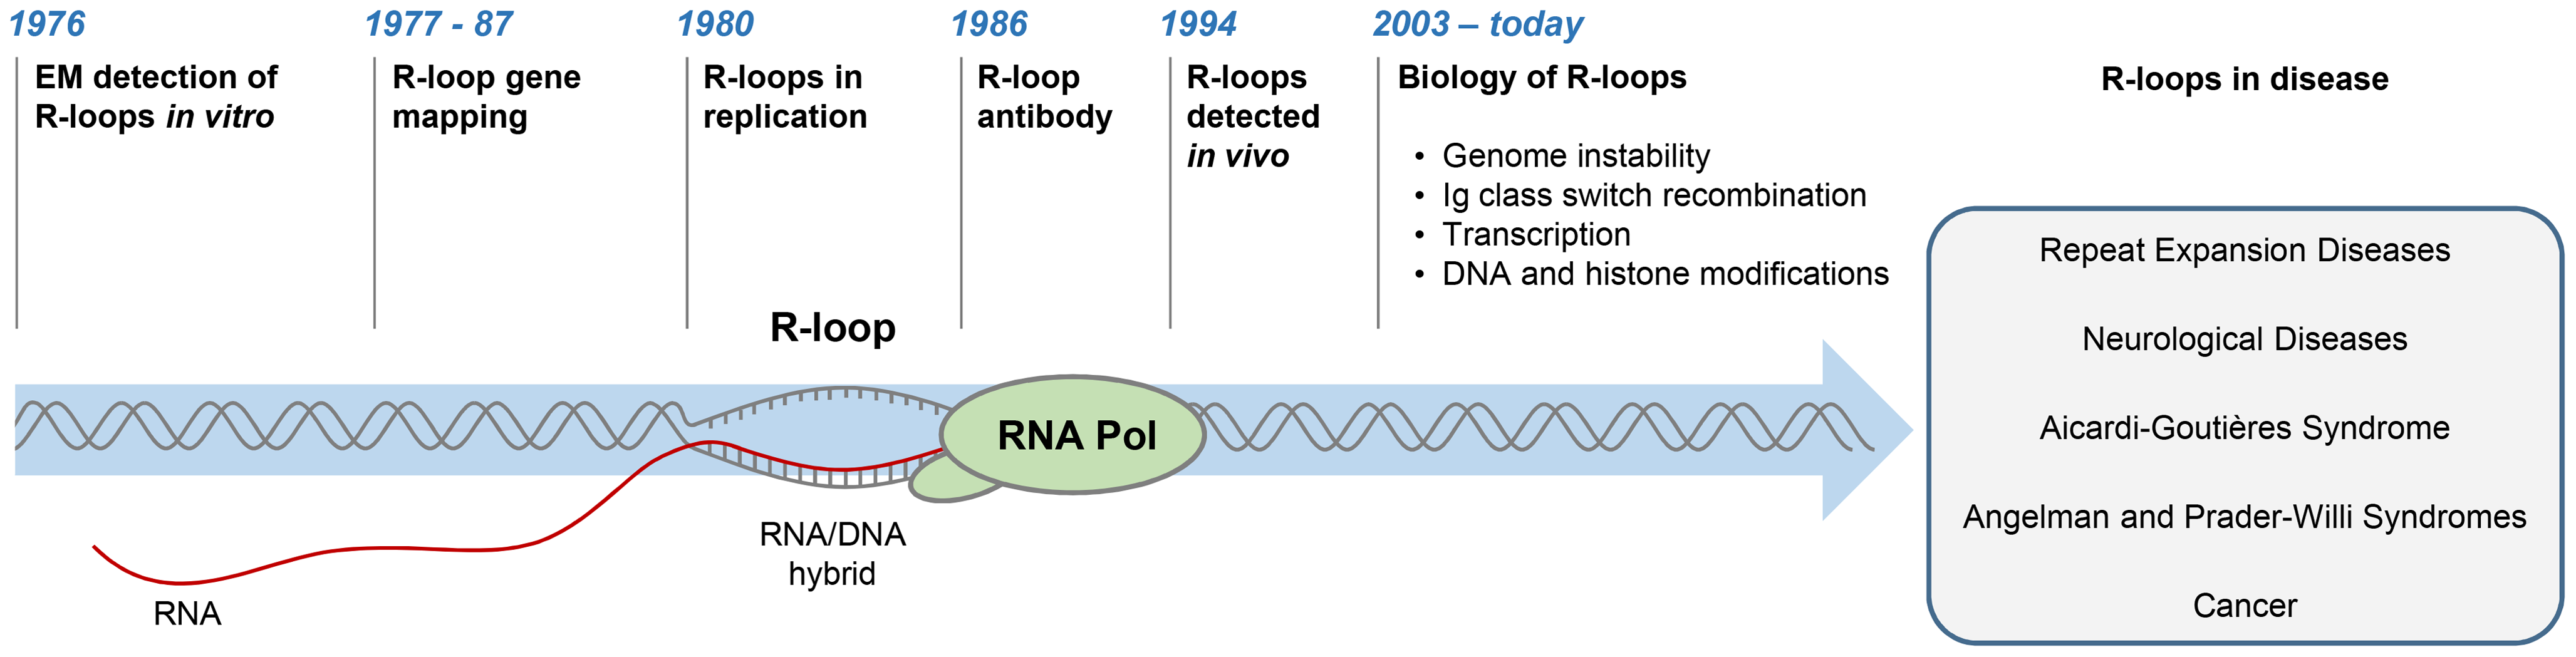 History of R-loop research.